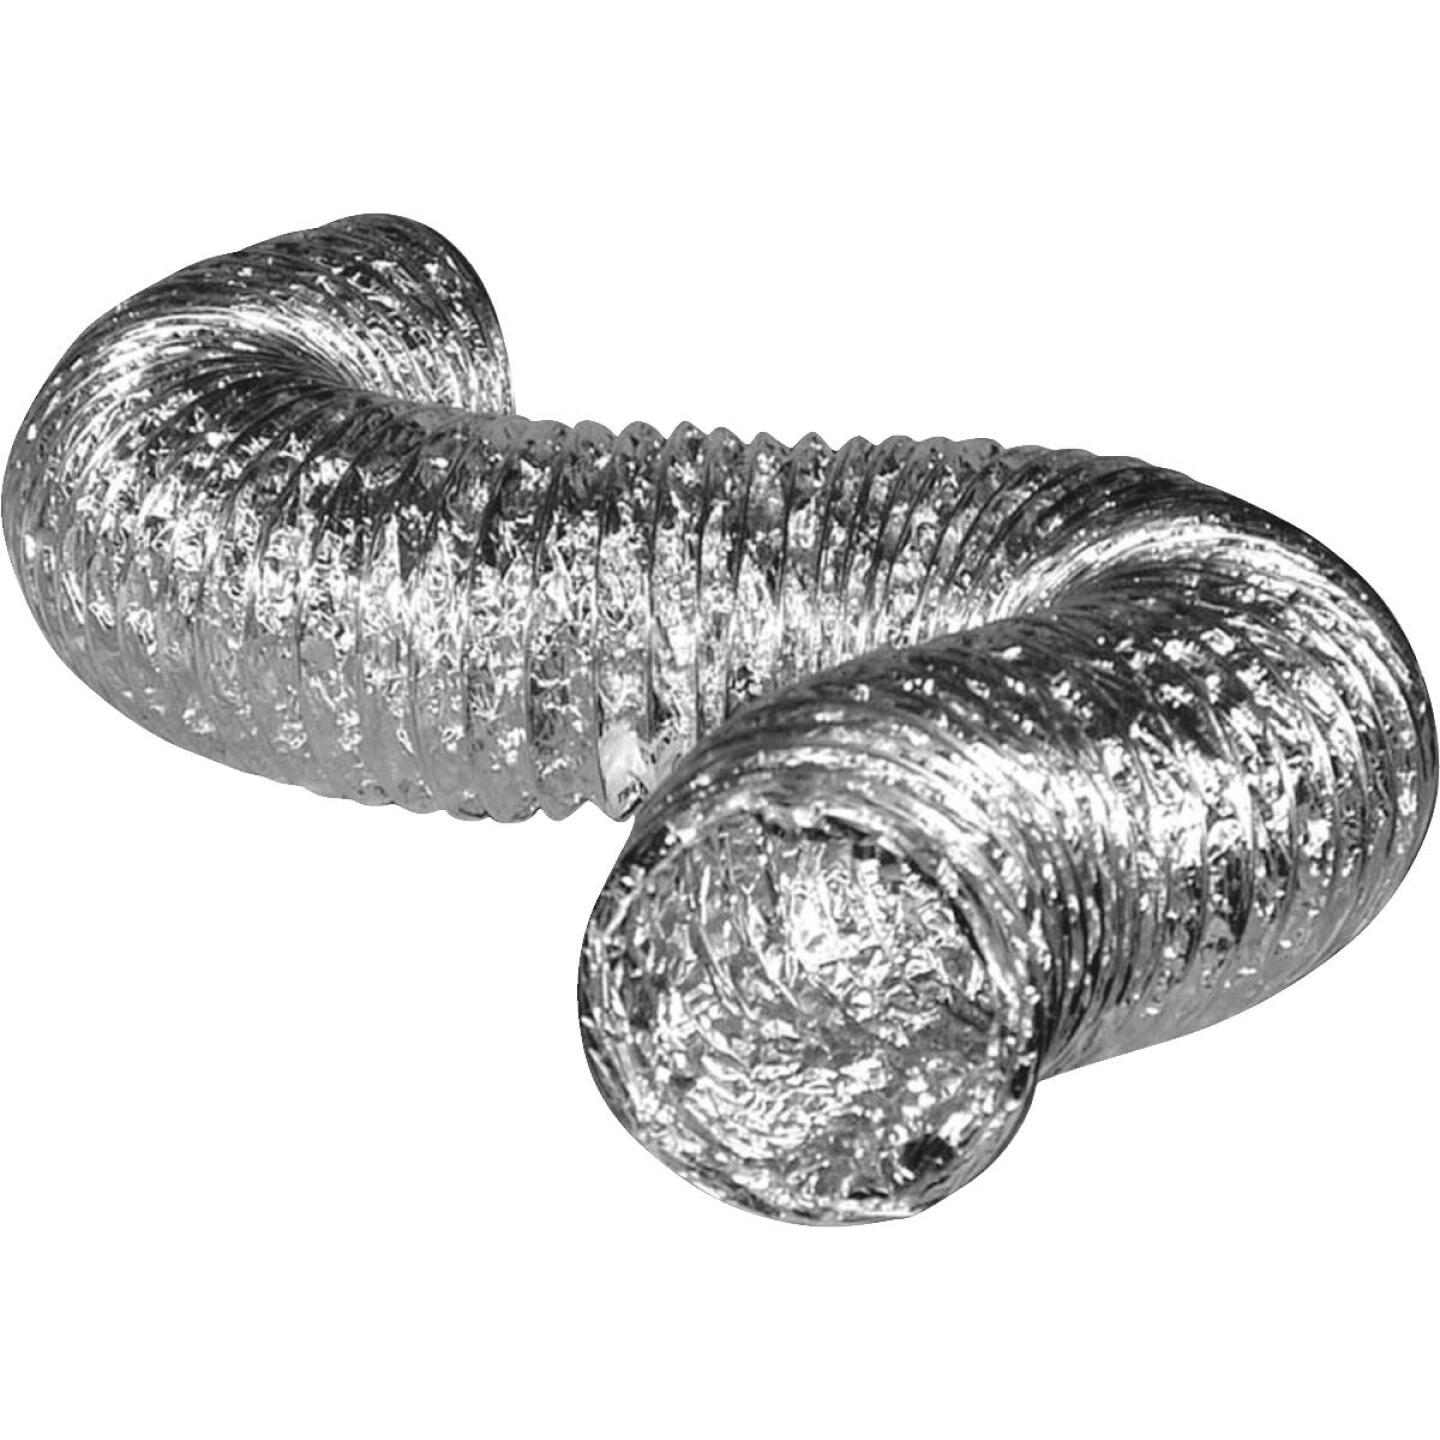 Dundas Jafine 6 In. Dia x 25 Ft. L UL 181 Listed Aluminum Foil Flexible Ducting Image 1